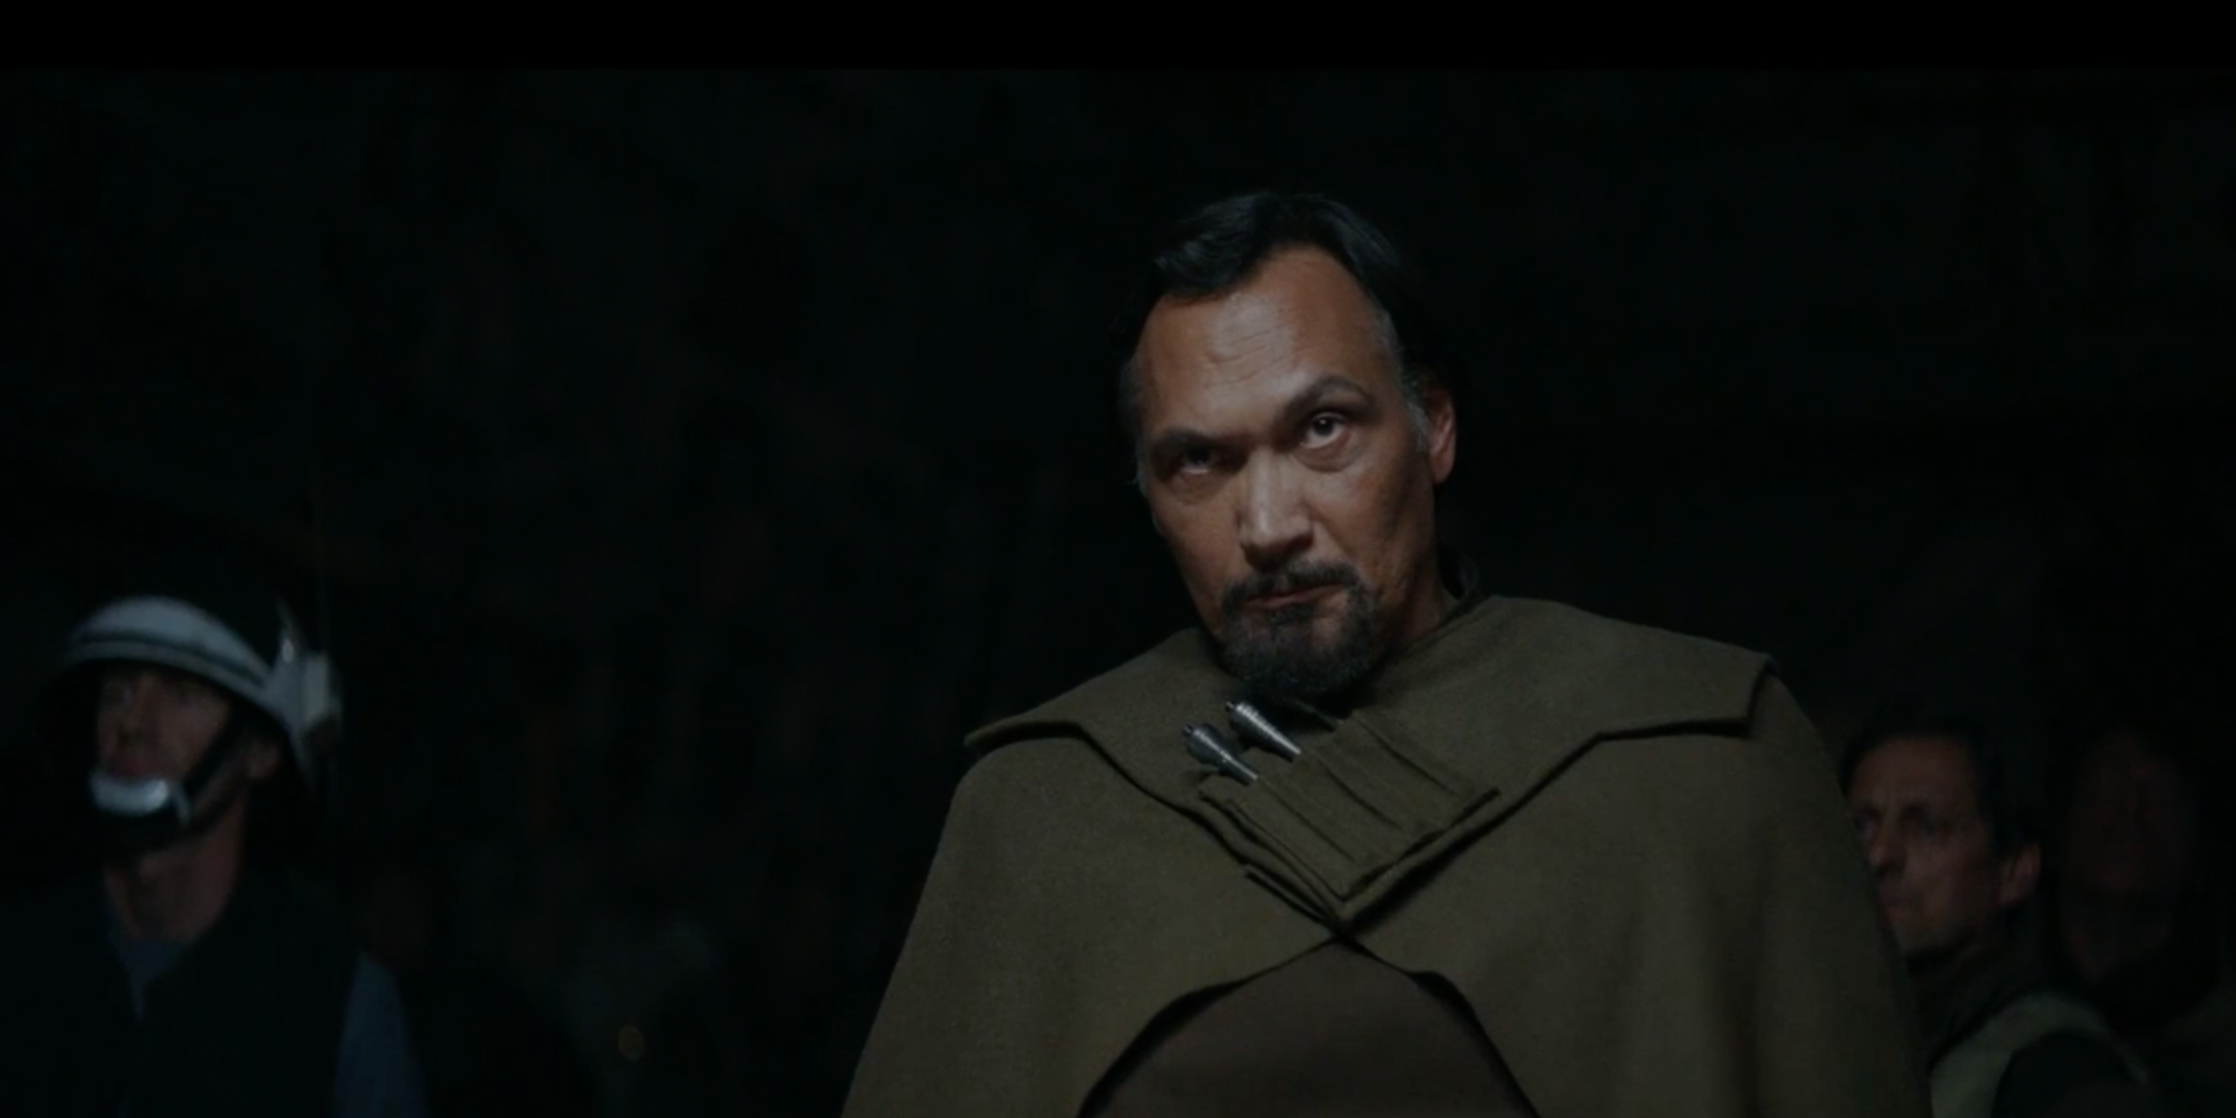 Jimmy Smitt as Bail Organa in Rogue One: A Star Wars Story clip